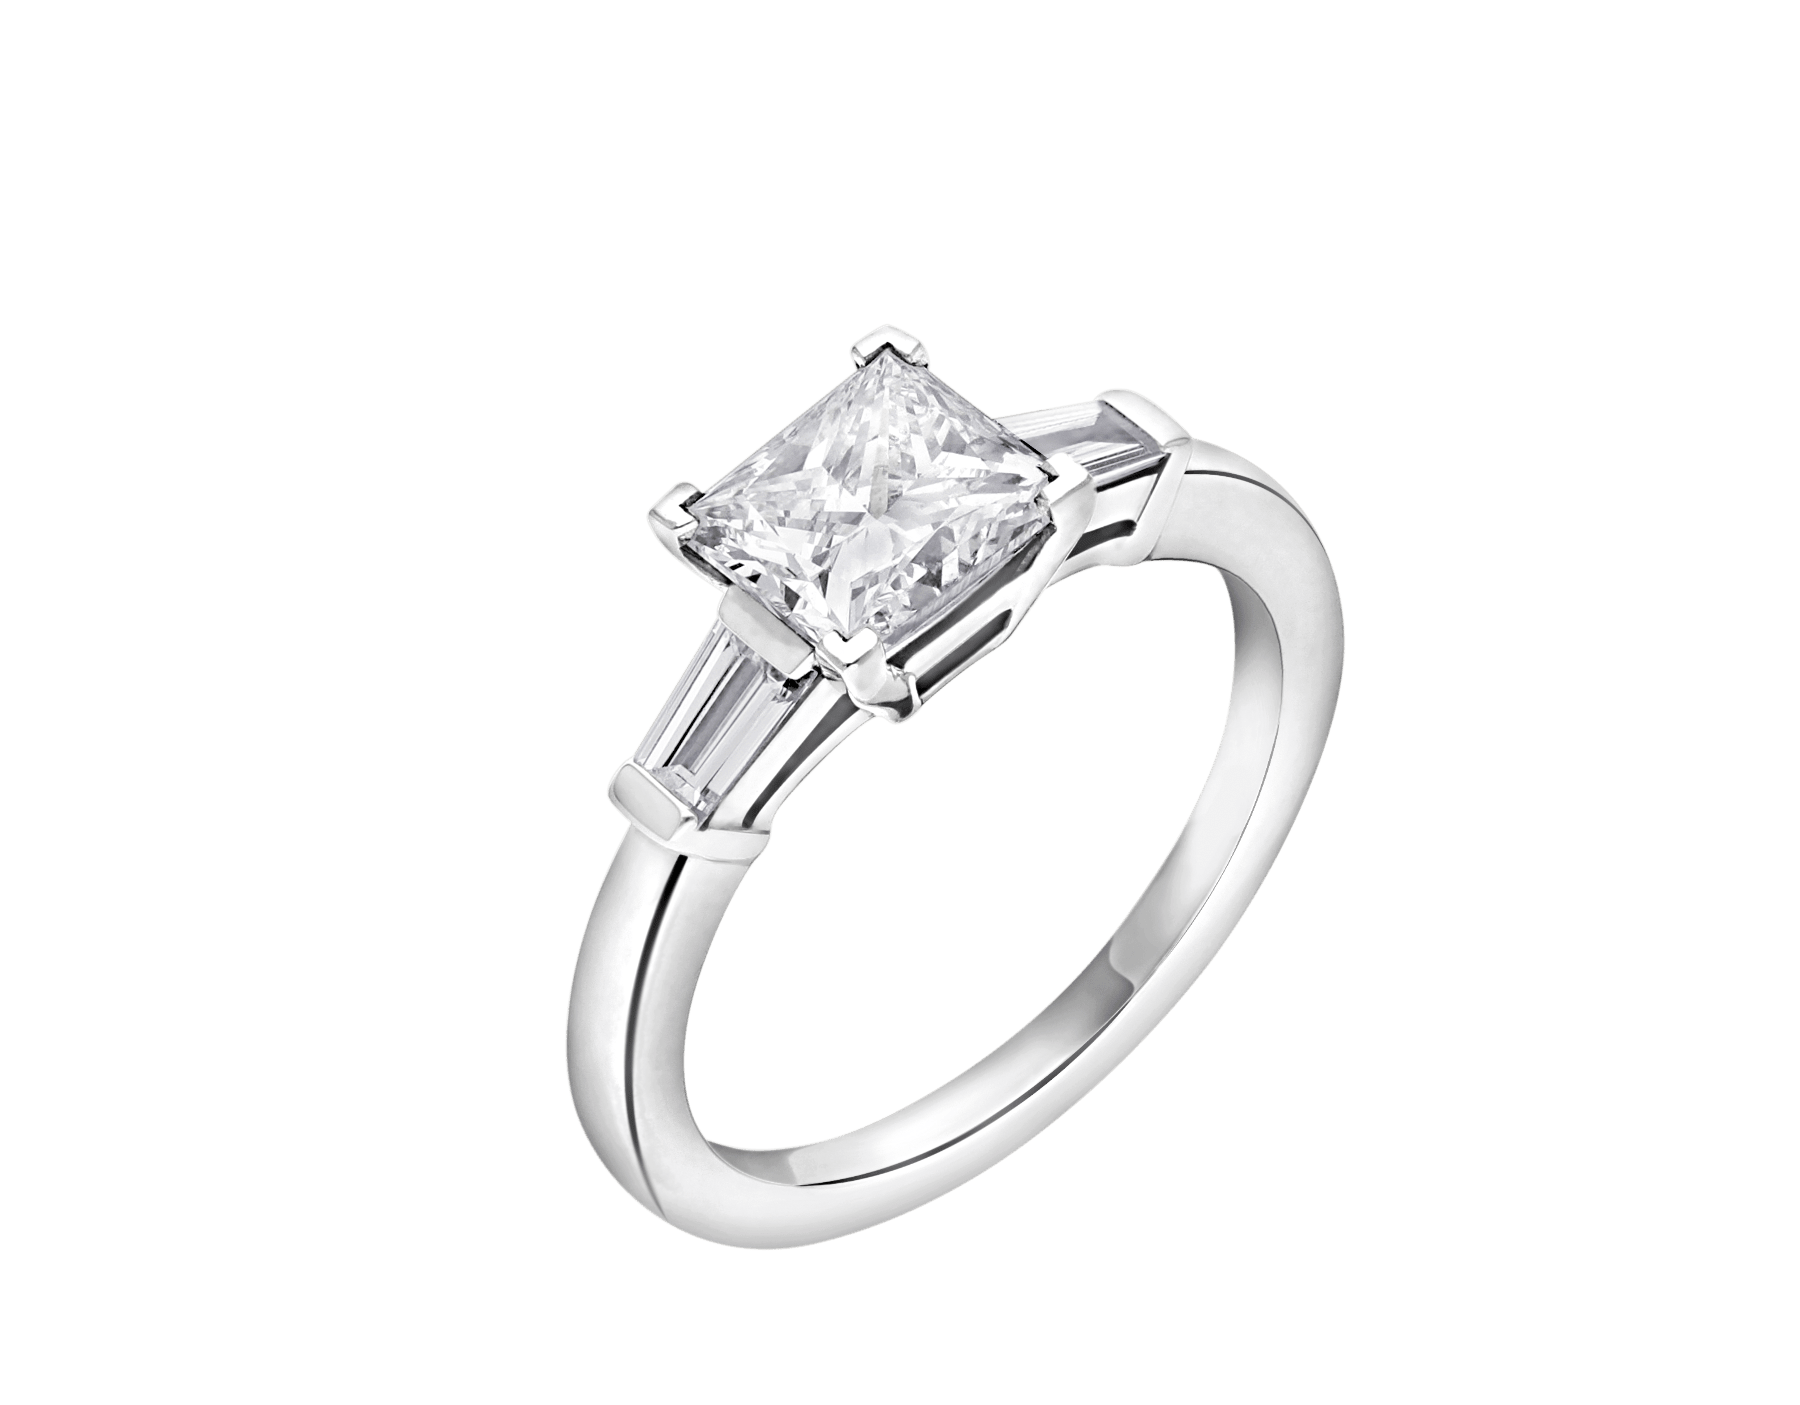 Griffe solitaire ring in platinum with princess cut diamond and two side diamonds. Available in 1 ct. A classic setting that allows the beauty and the pureness of the solitaire diamond to assert itself. 338560 image 2